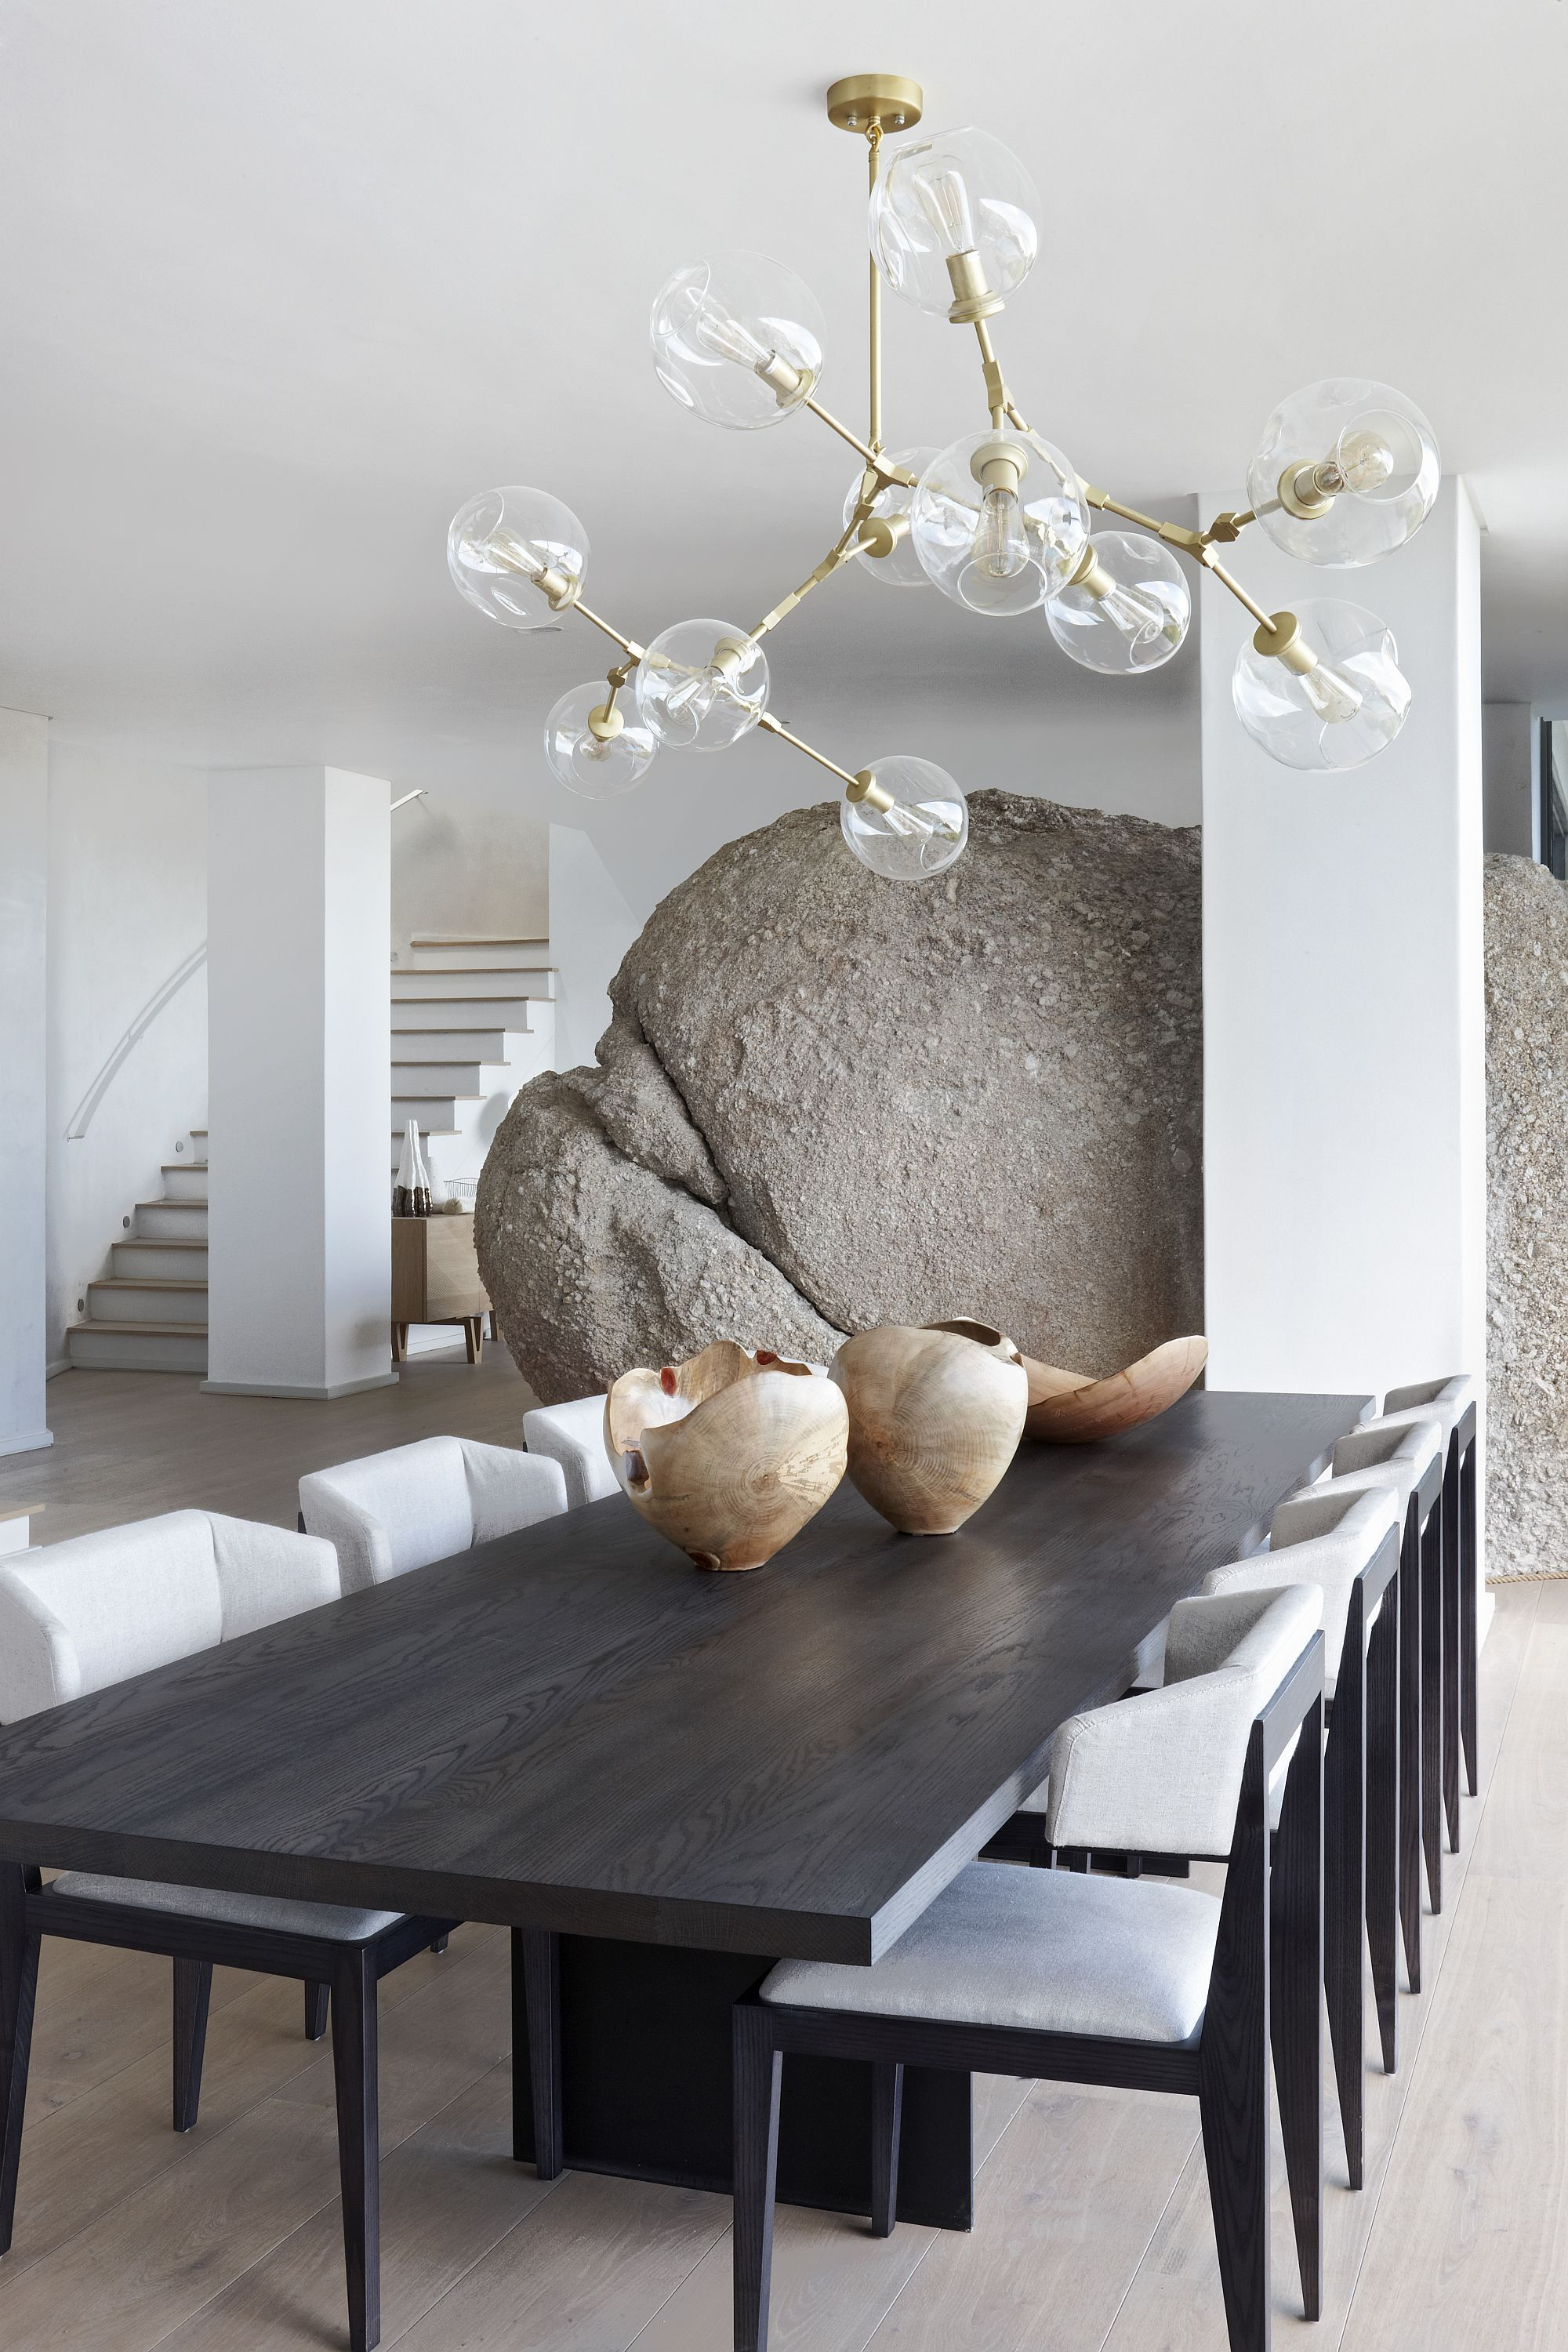 Modern Minimalism Meets Reimagined African Heritage Inside this Cape Town Home #minimalinteriors